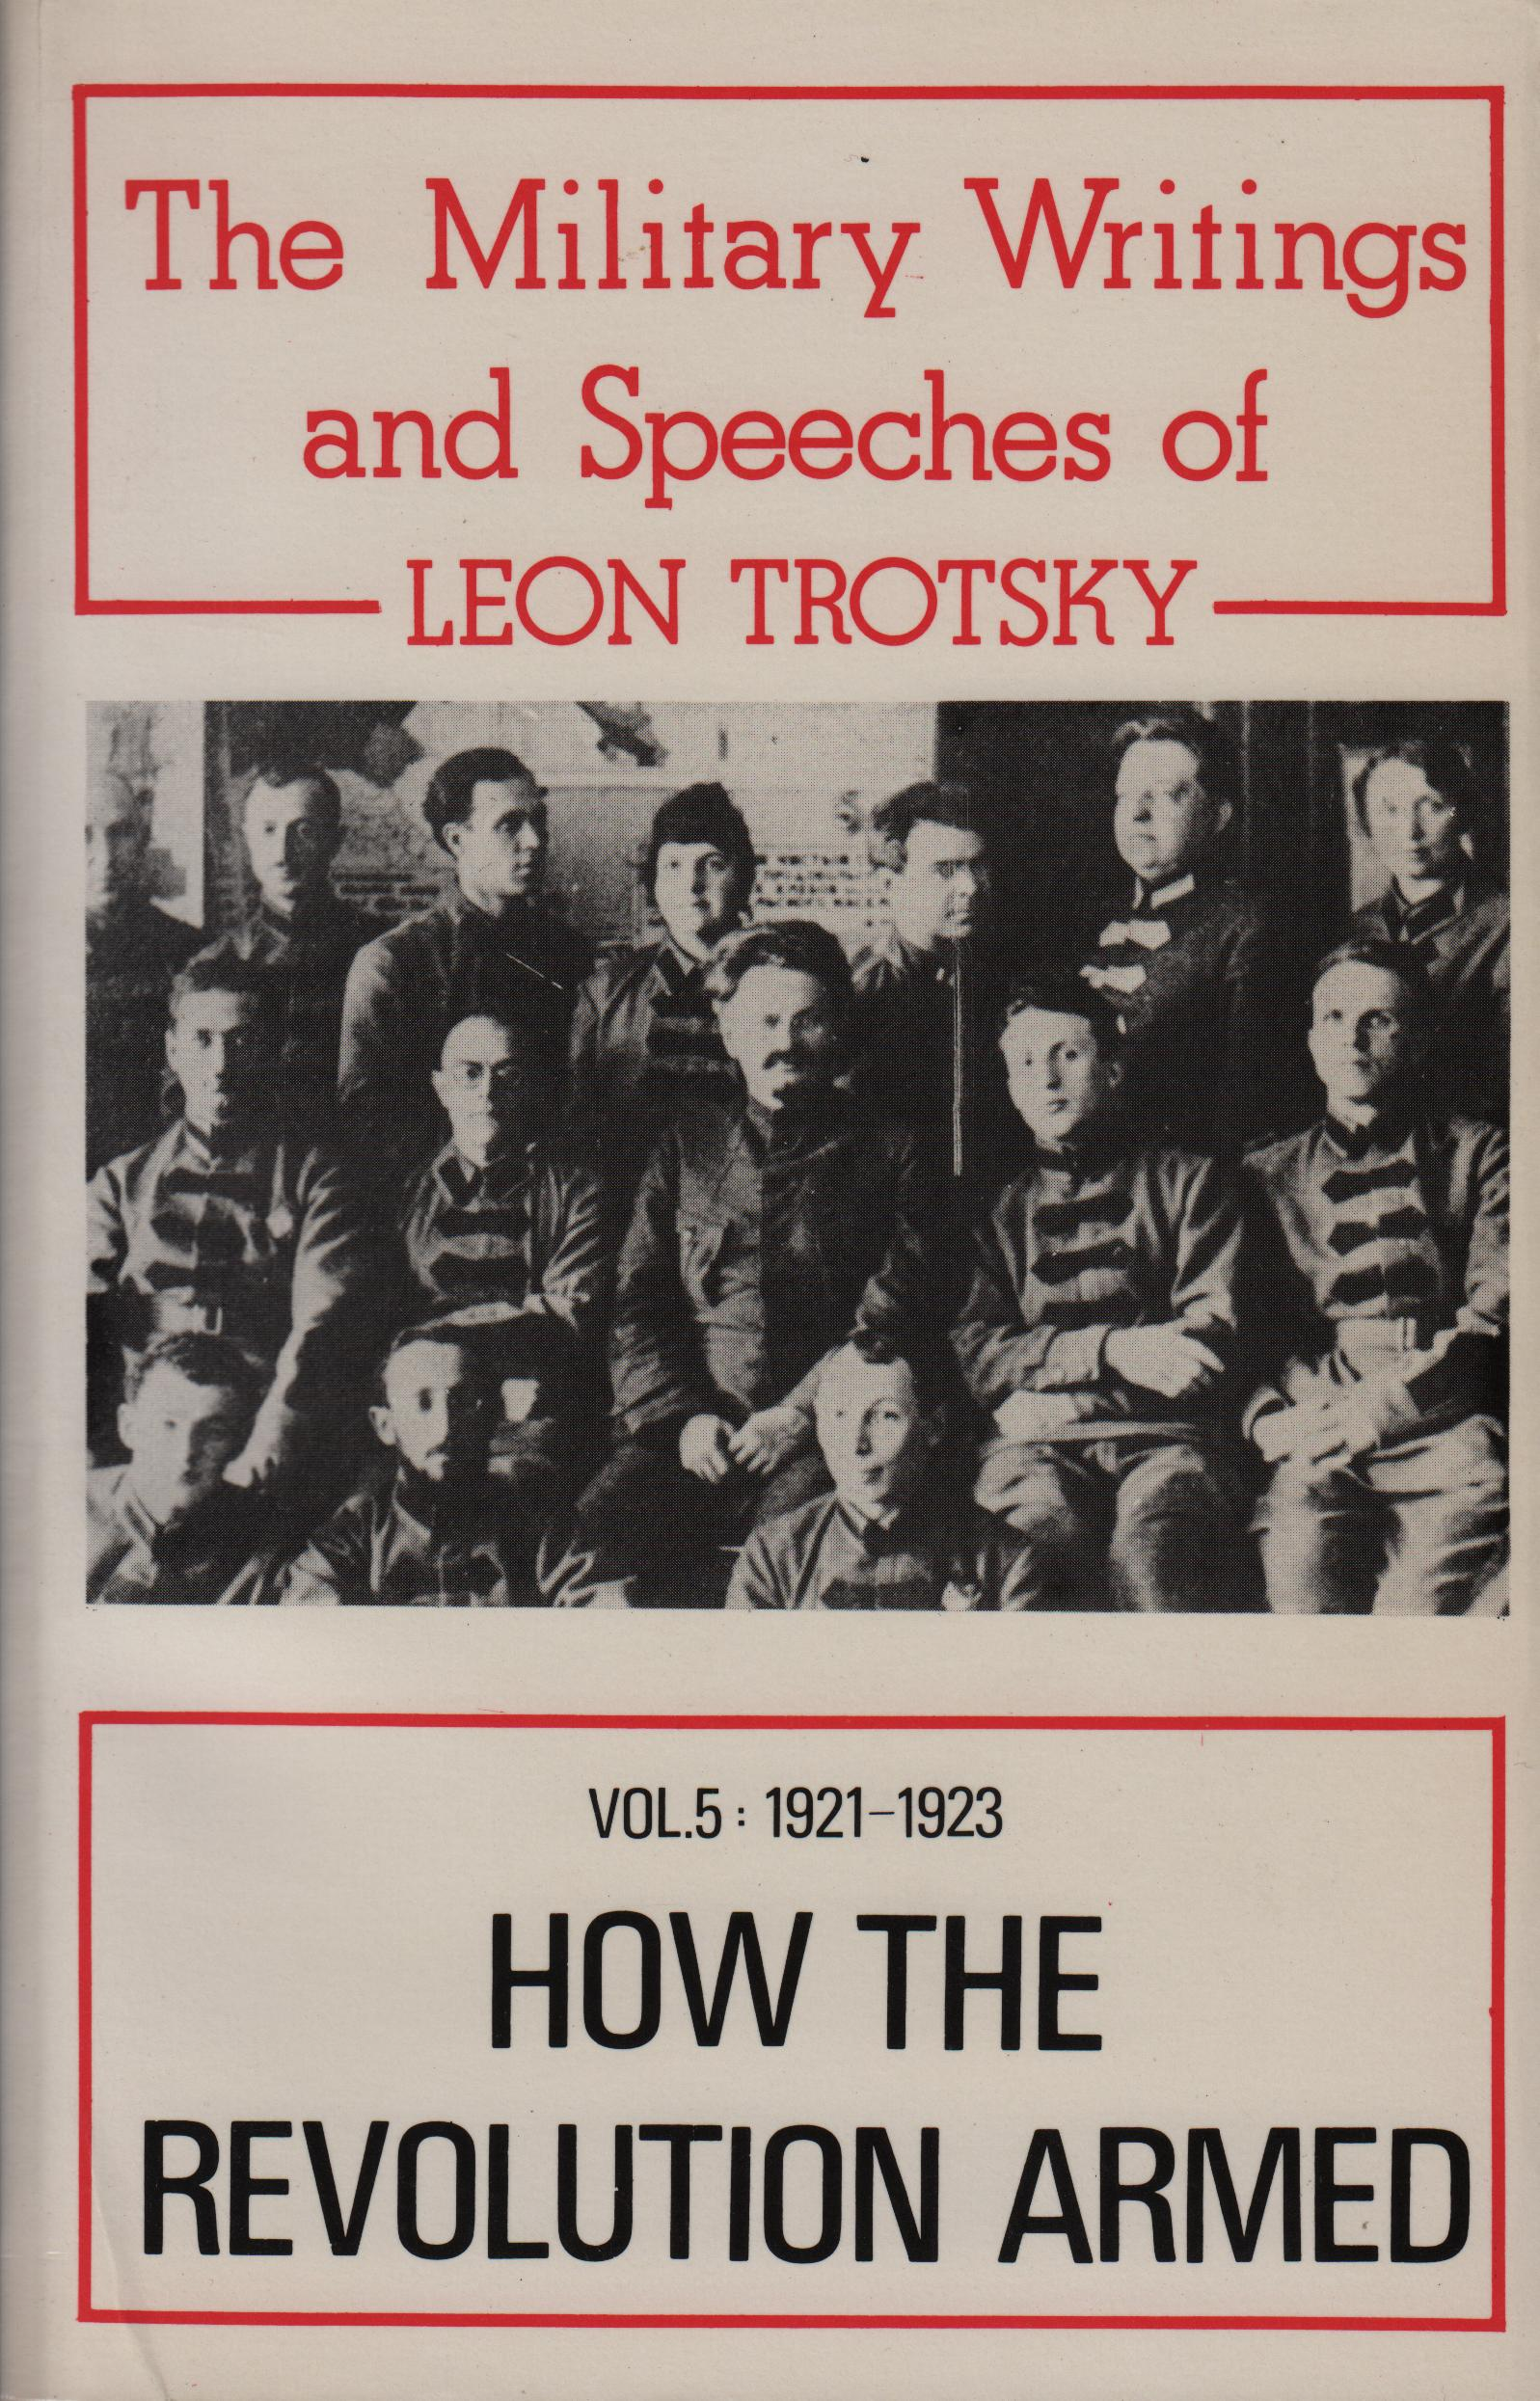 leon trotsky essay Essays on trotsky we have found 134 essays on trotsky write an essay about who you think trotsky is blaming for starting world war two and why leon trotsky.